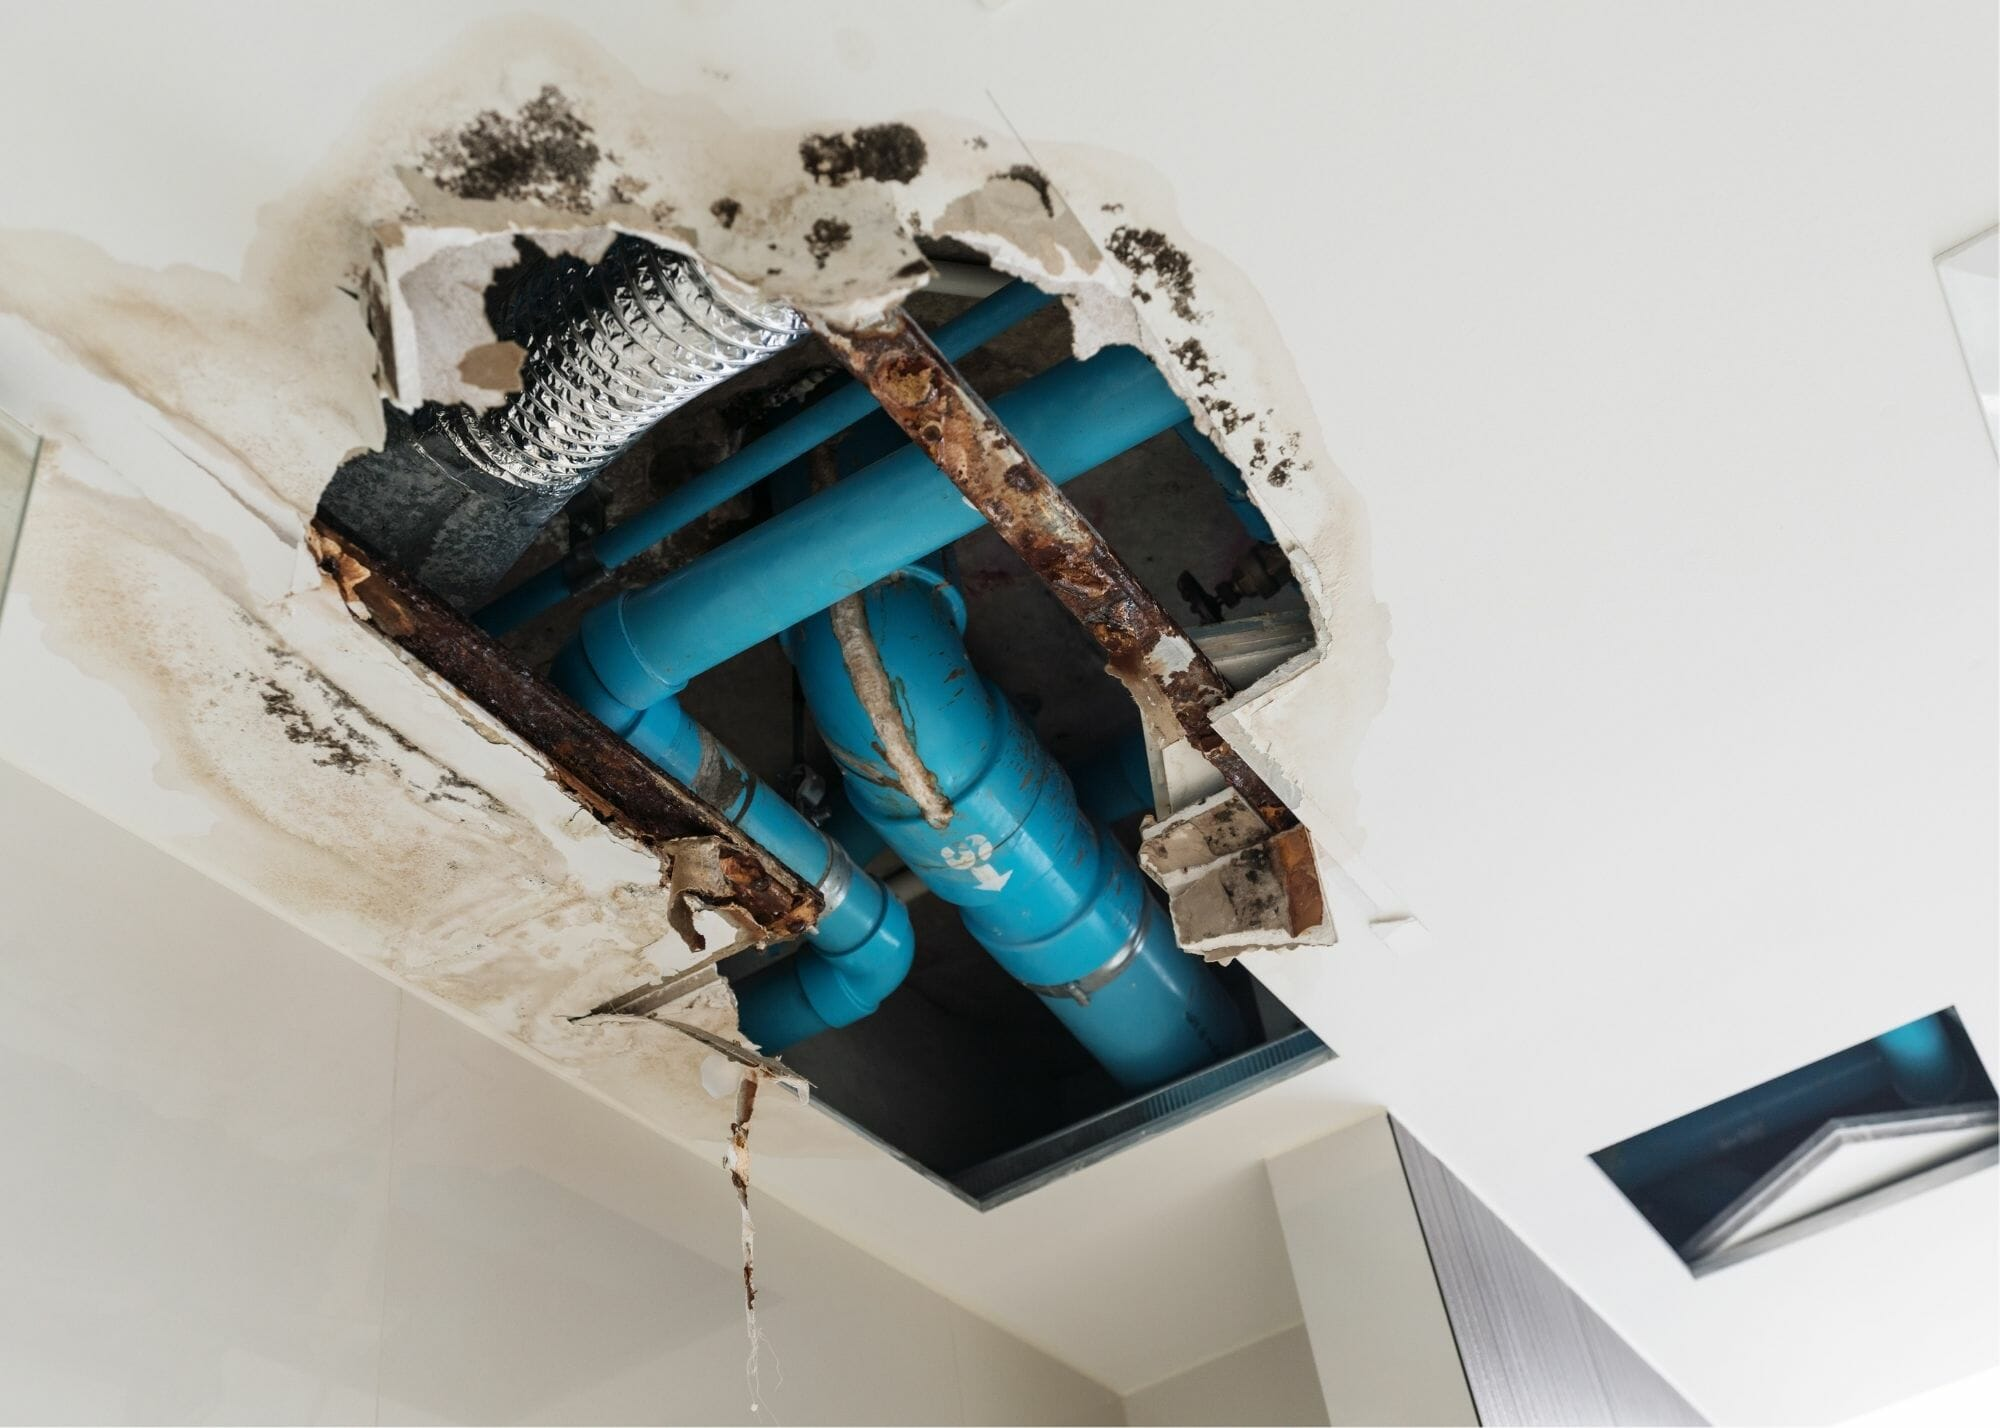 Water Damage and Pipe Burst